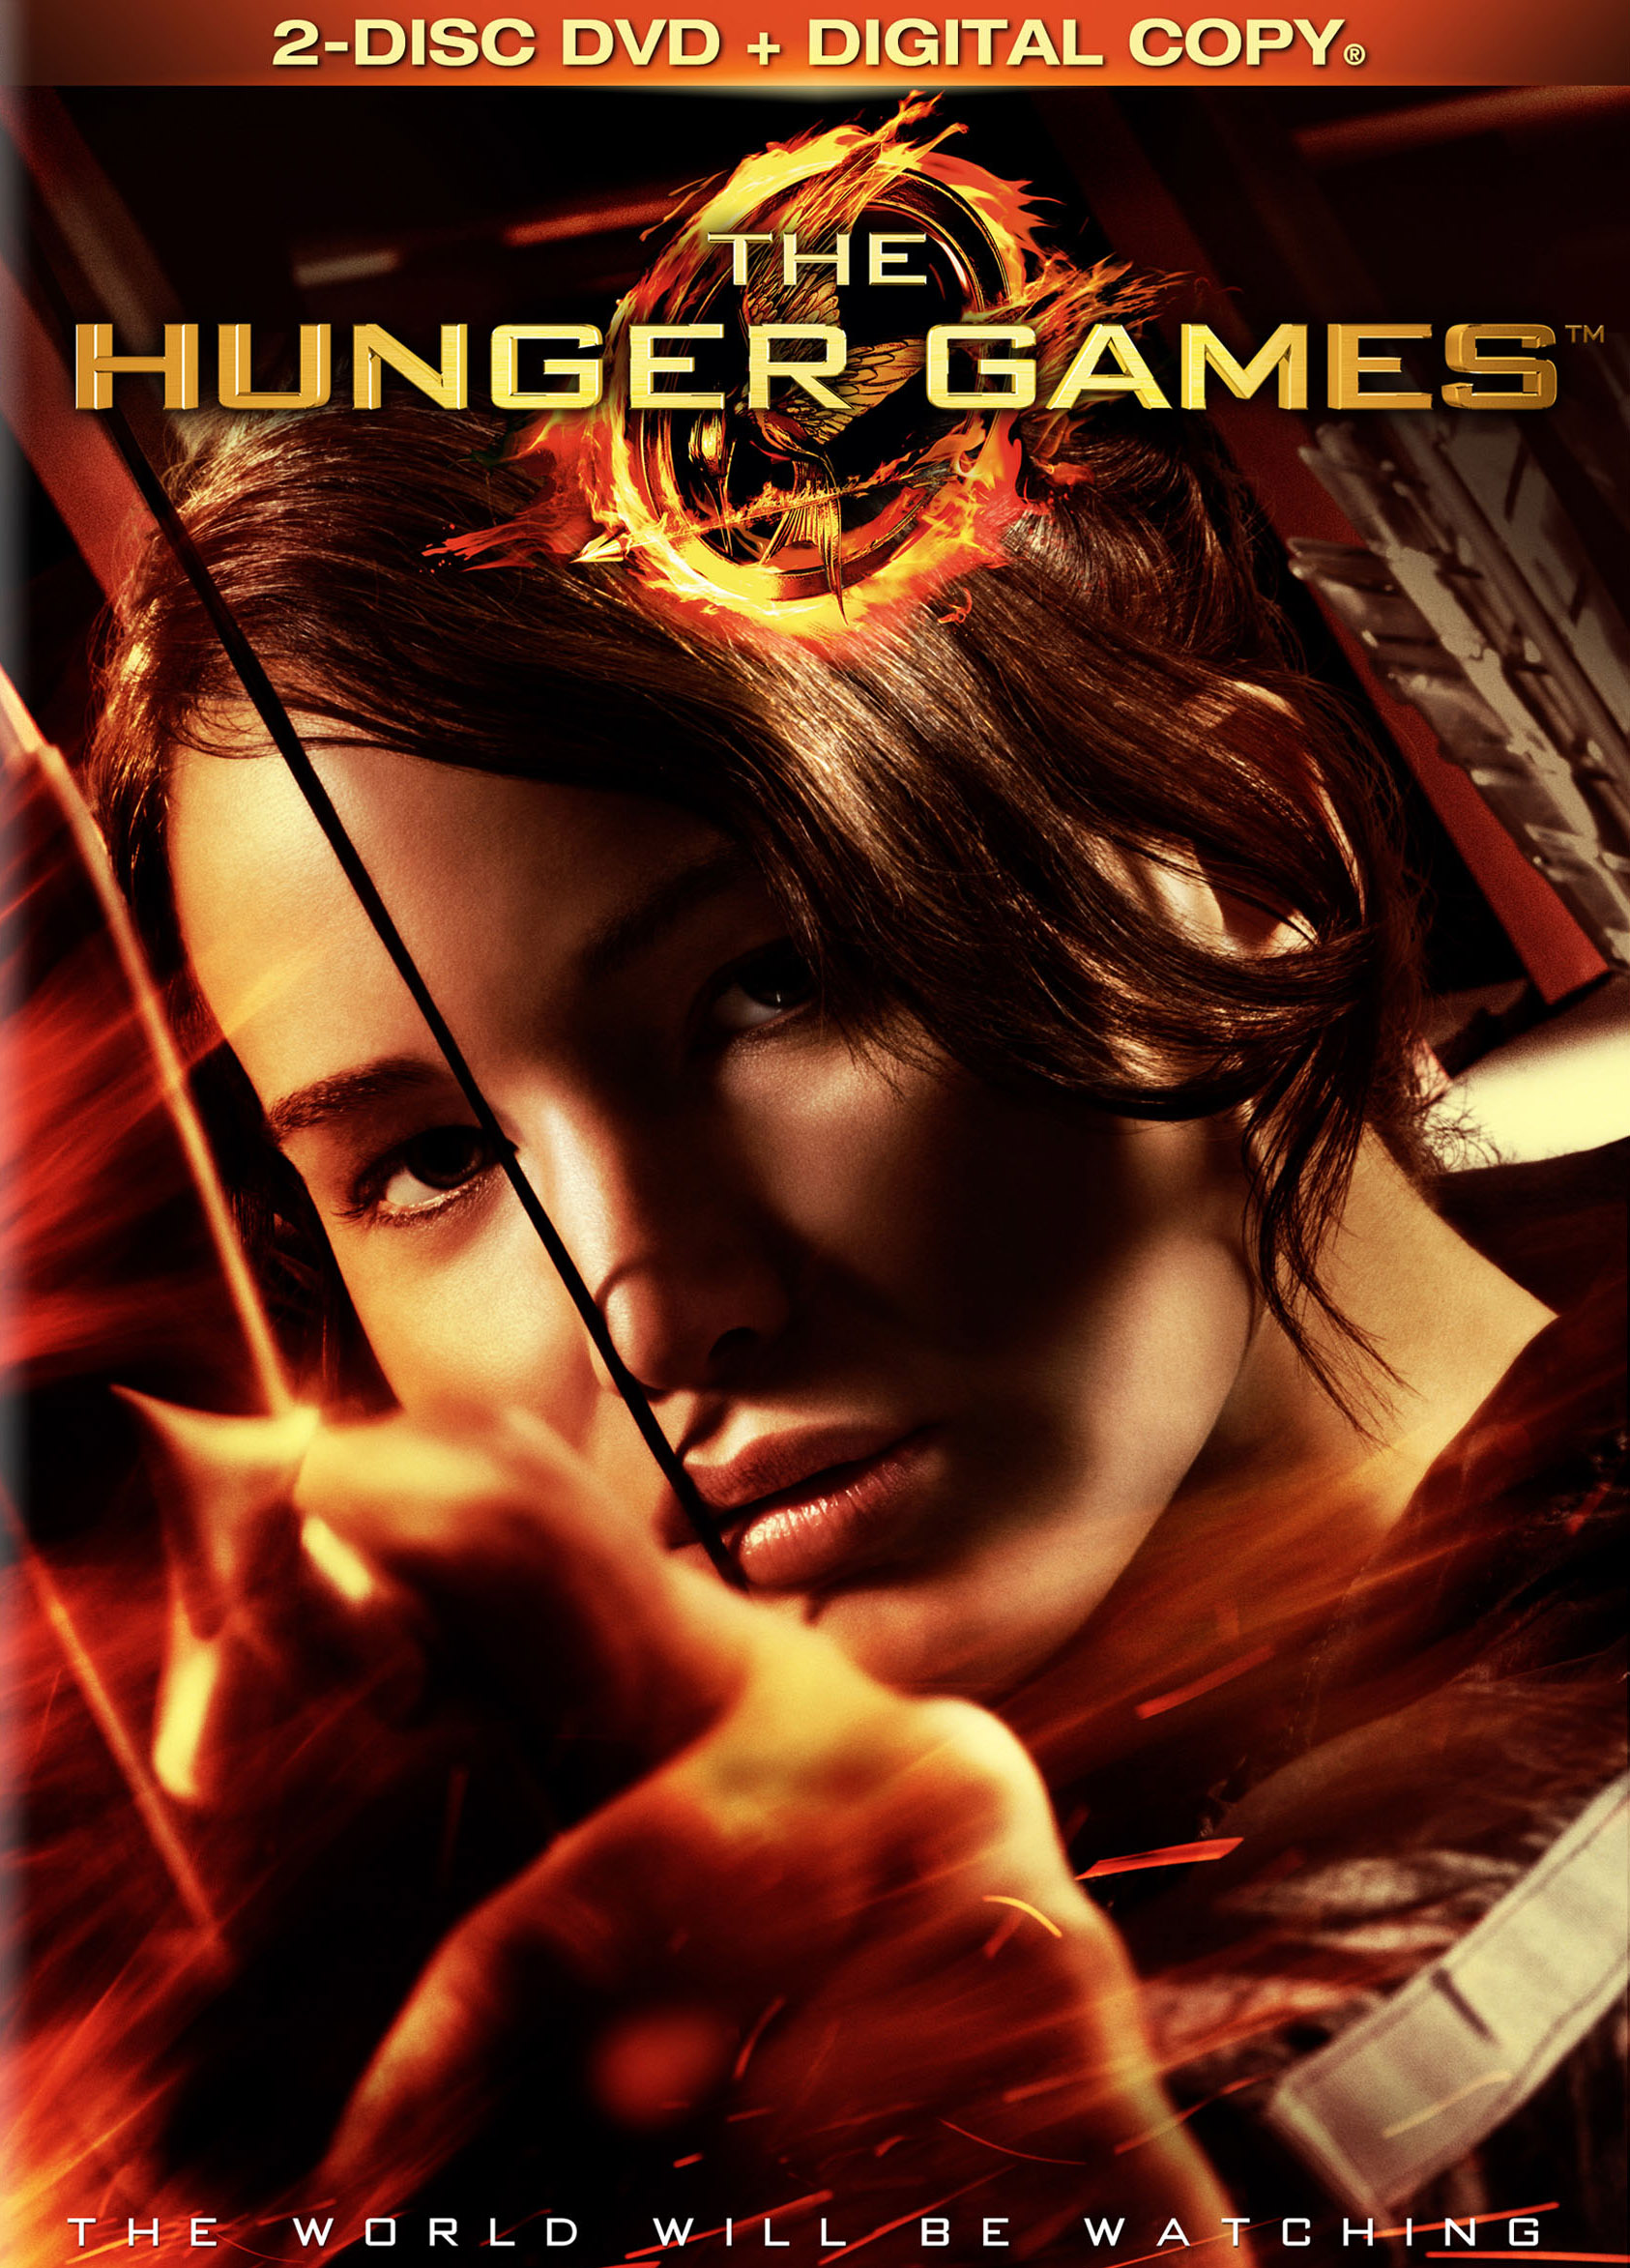 TÉLÉCHARGER HUNGER GAMES LEMBRASEMENT UPTOBOX